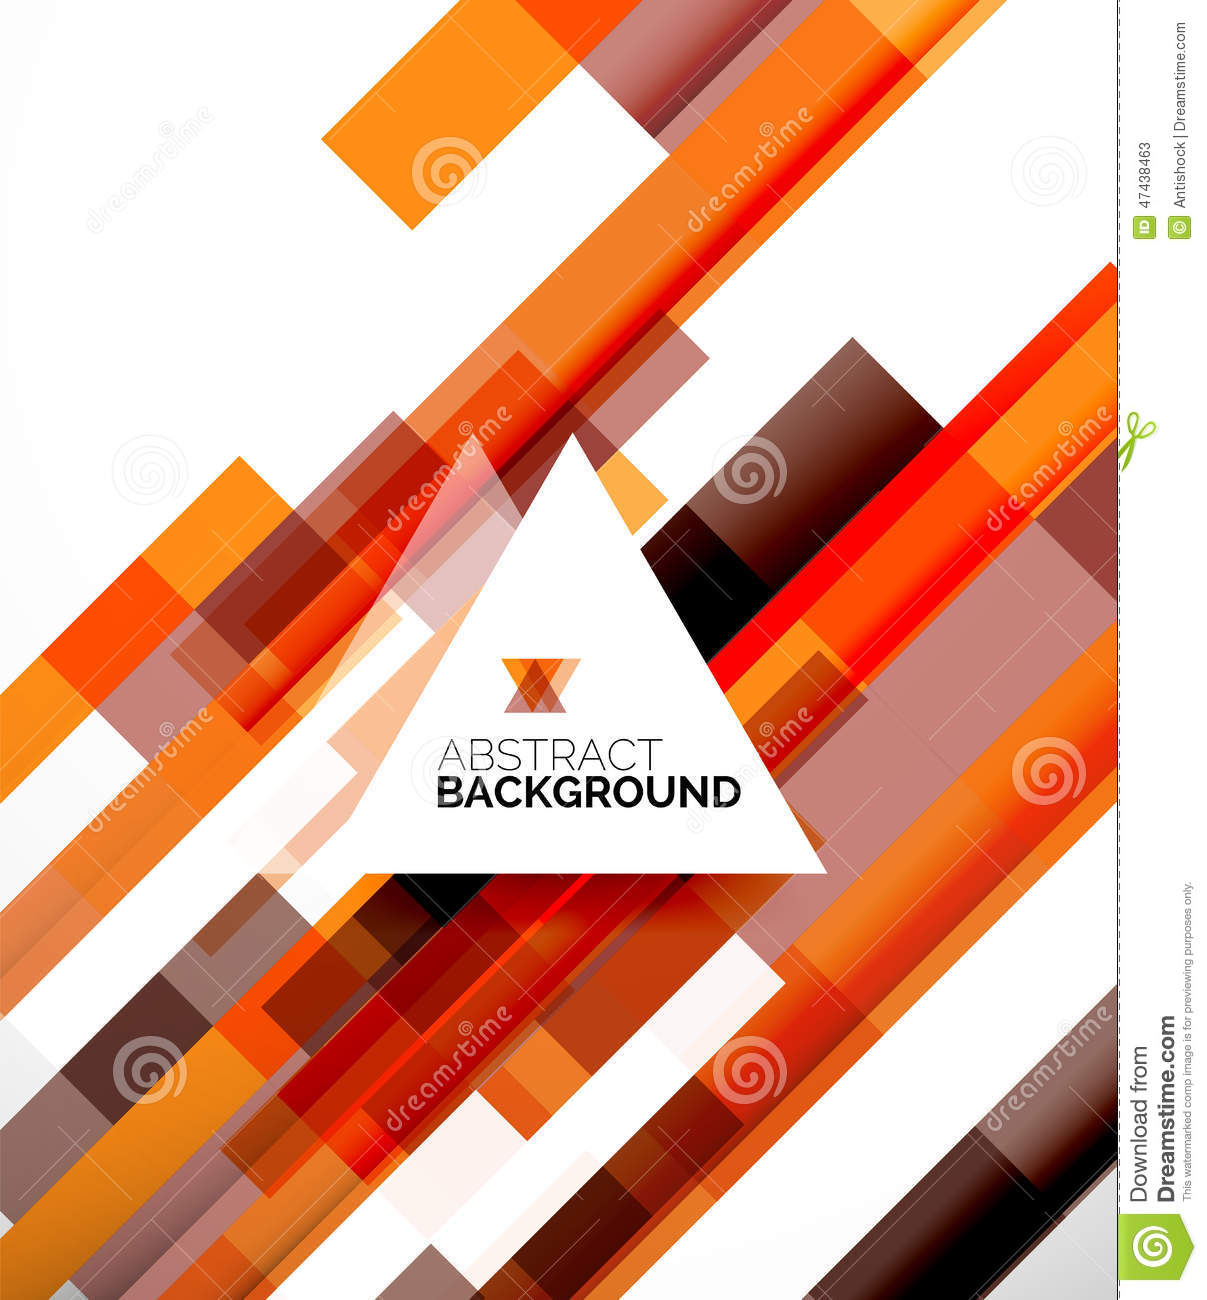 Abstract Flyer Template Design Background Stock Vector - Image ...